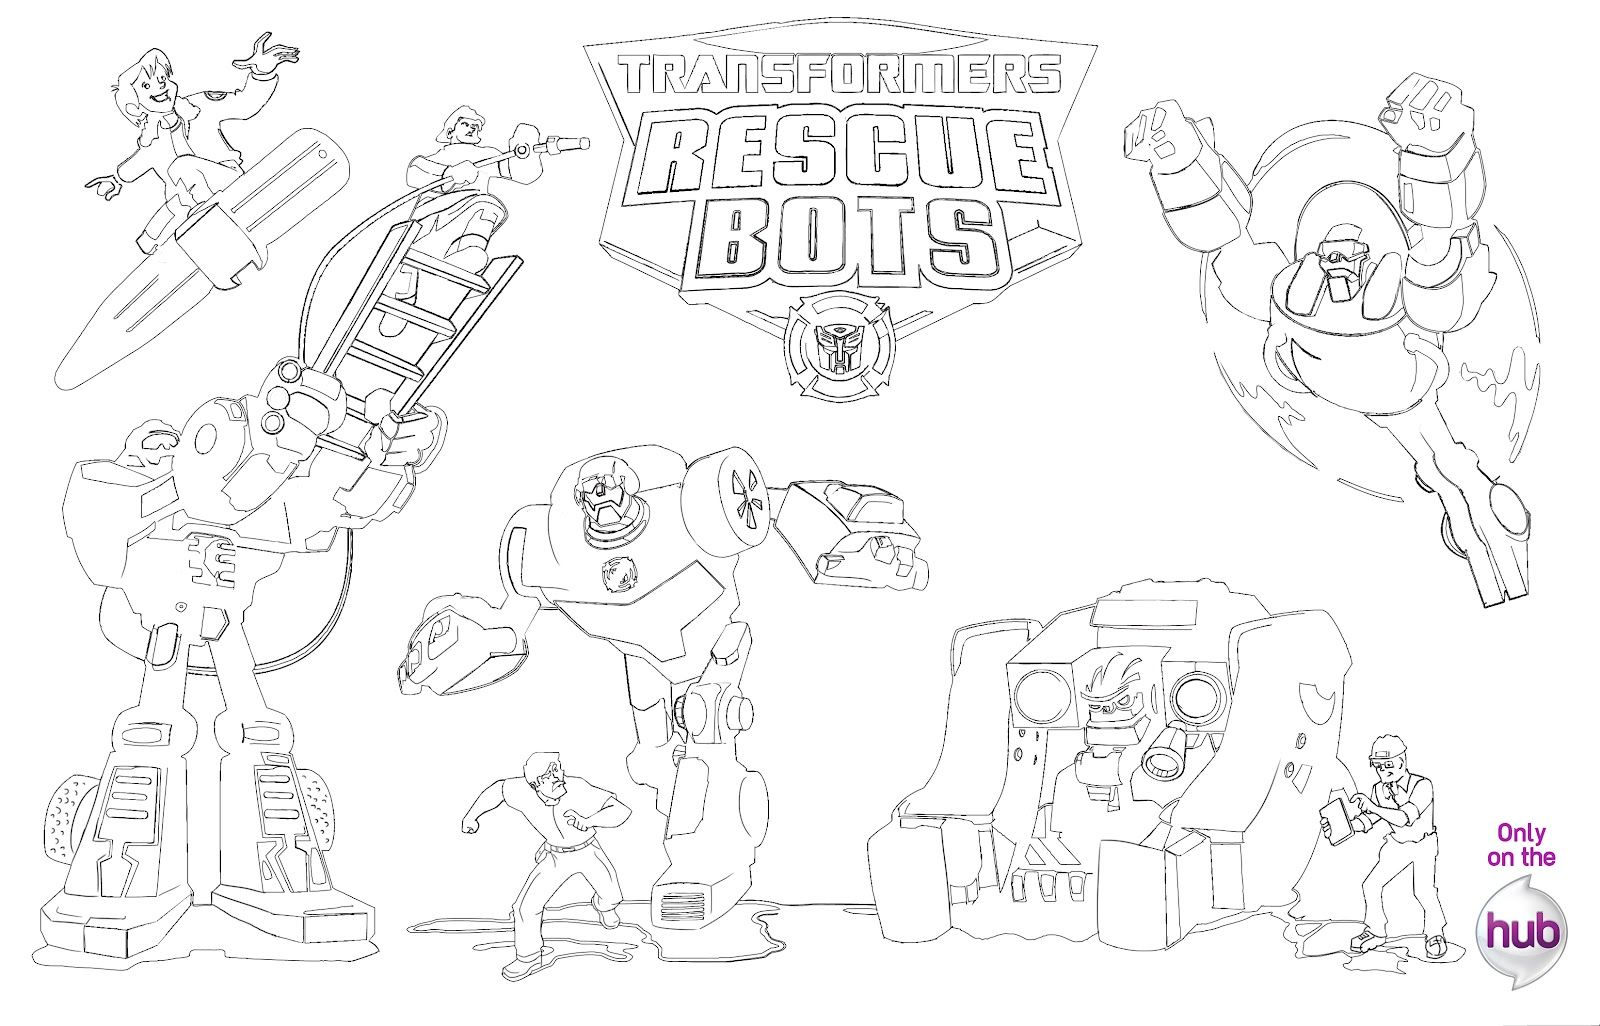 New Transformers Tv Series For Kids On The Hub Network Outnumbered 3 To 1 Rescue Bots Transformers Rescue Bots Birthday Rescue Bots Birthday